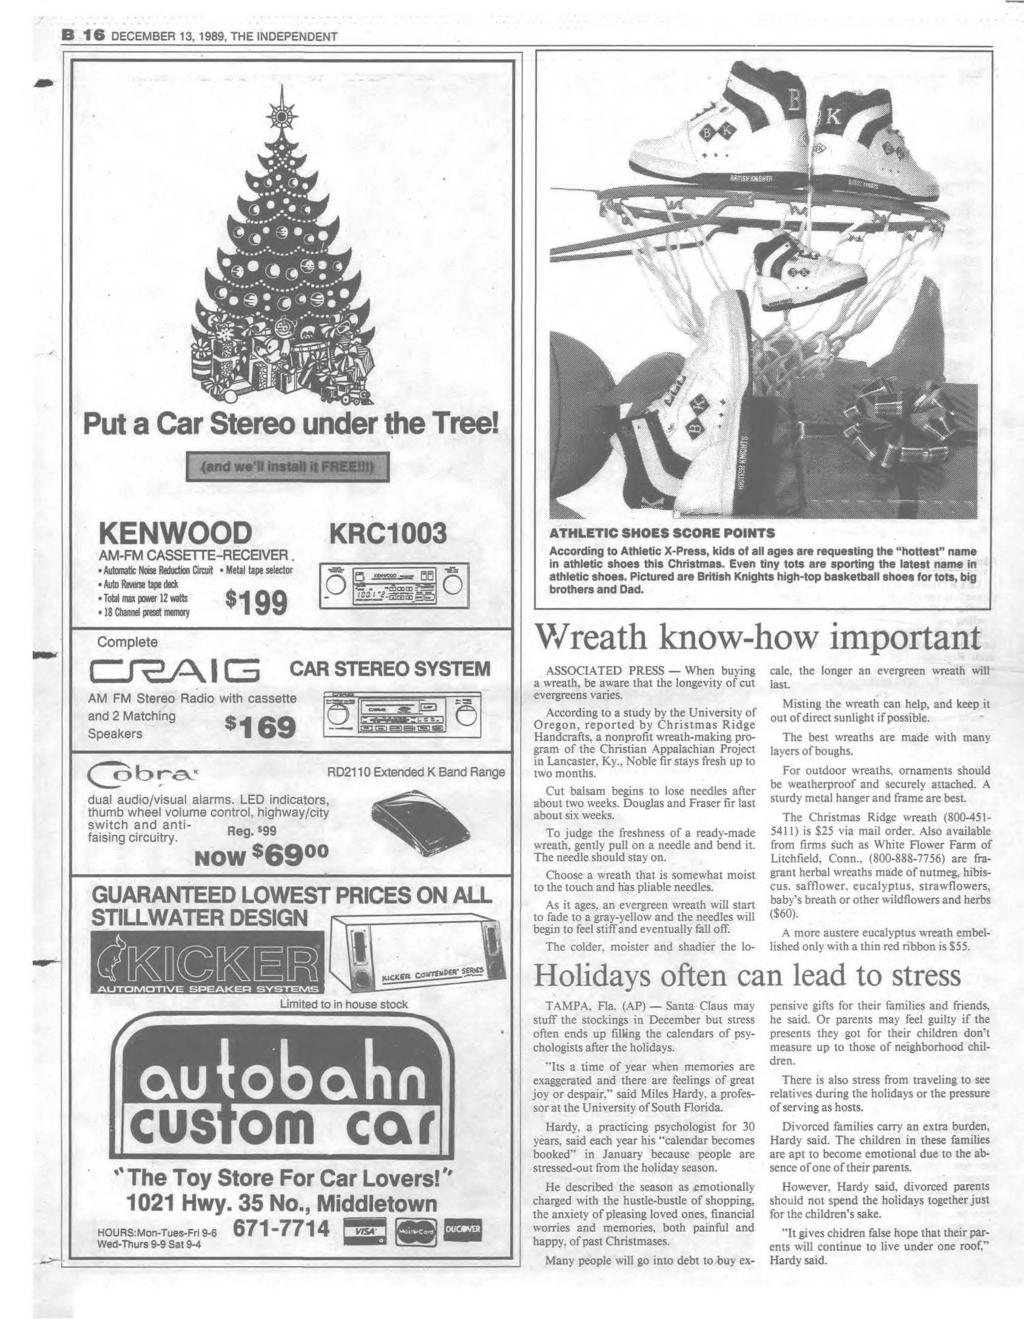 B 1 6 DECEM BER 13, 1989, THE INDEPENDENT Put a Car Stereo under the Tree! KENWOOD AM-FM CASSETTE-RECEIVER.